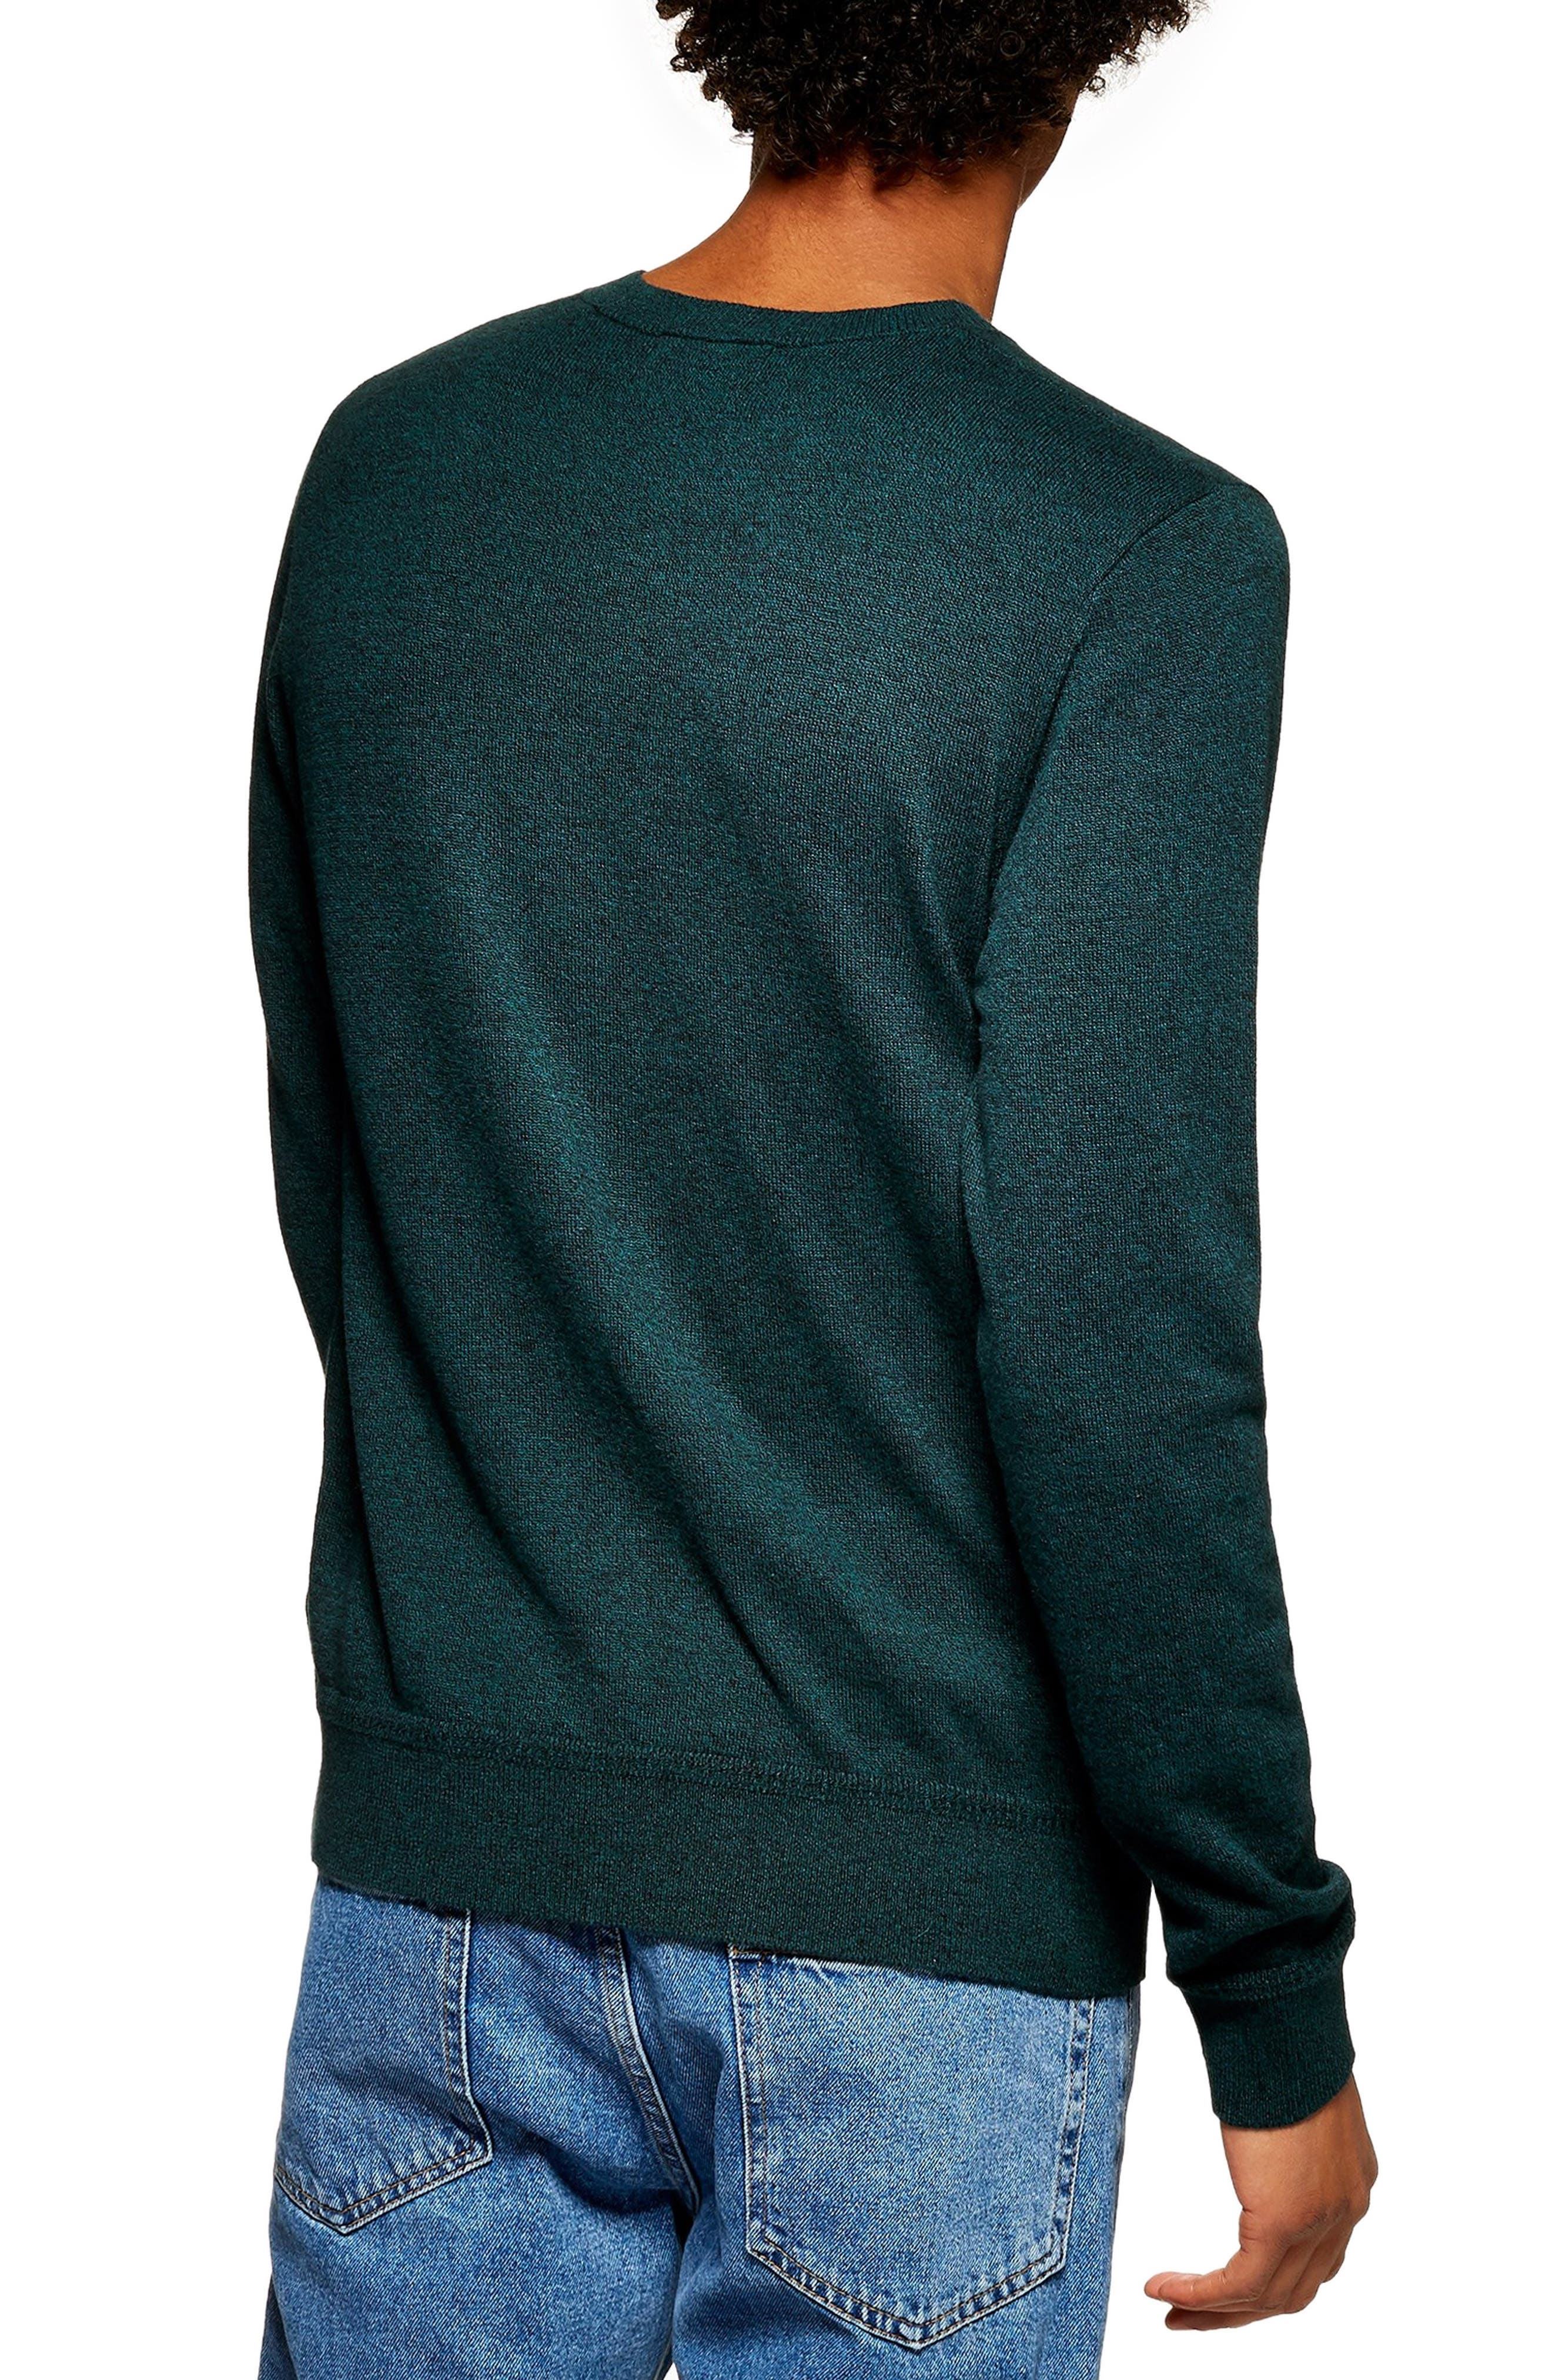 Marl Crewneck Sweater,                             Alternate thumbnail 2, color,                             GREEN